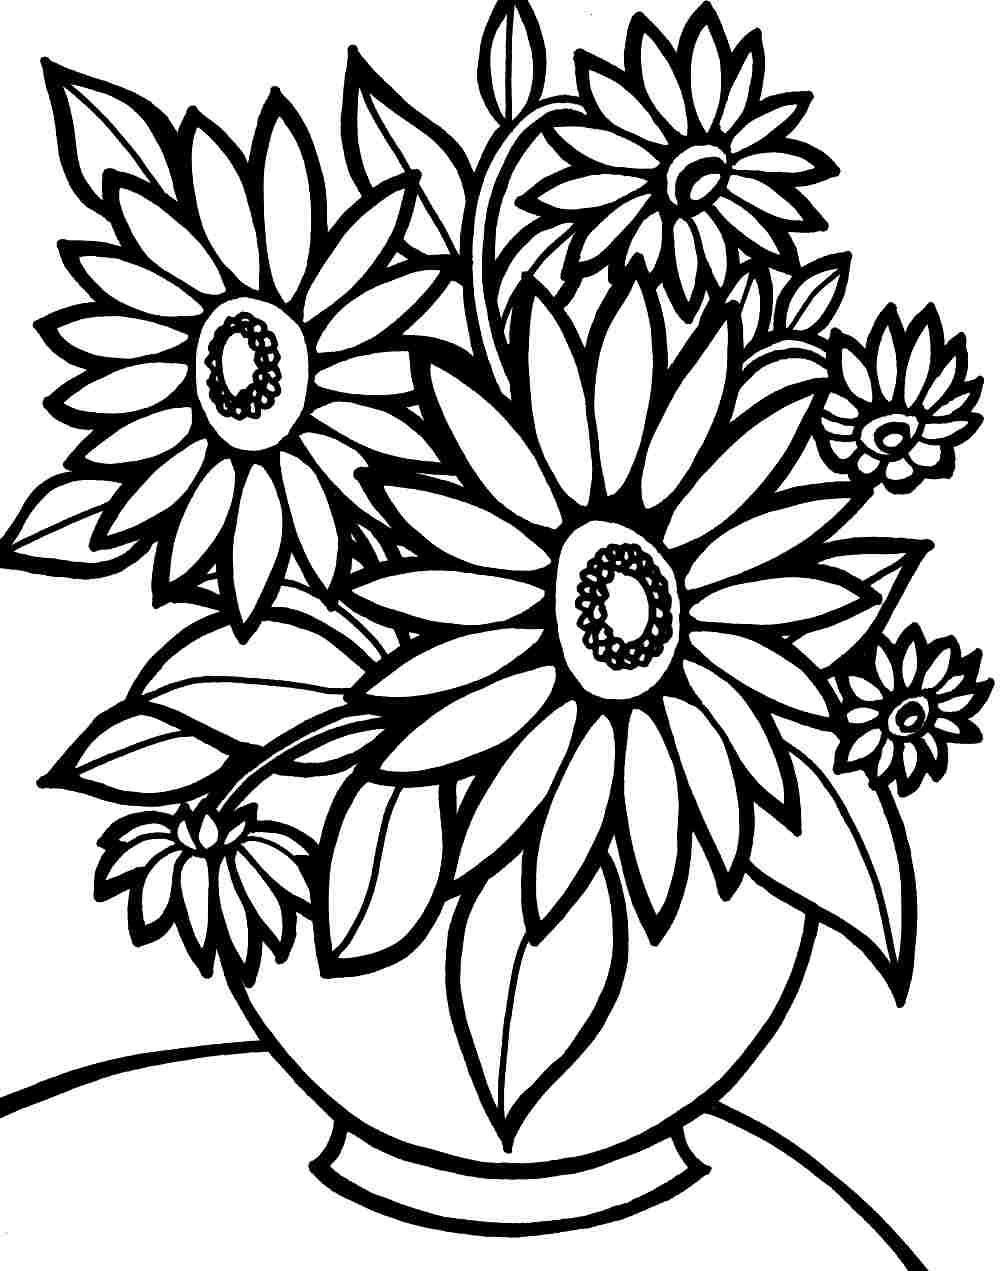 Colouring Pages Bouquet Flowers Printable Free For Kids Girls 45436